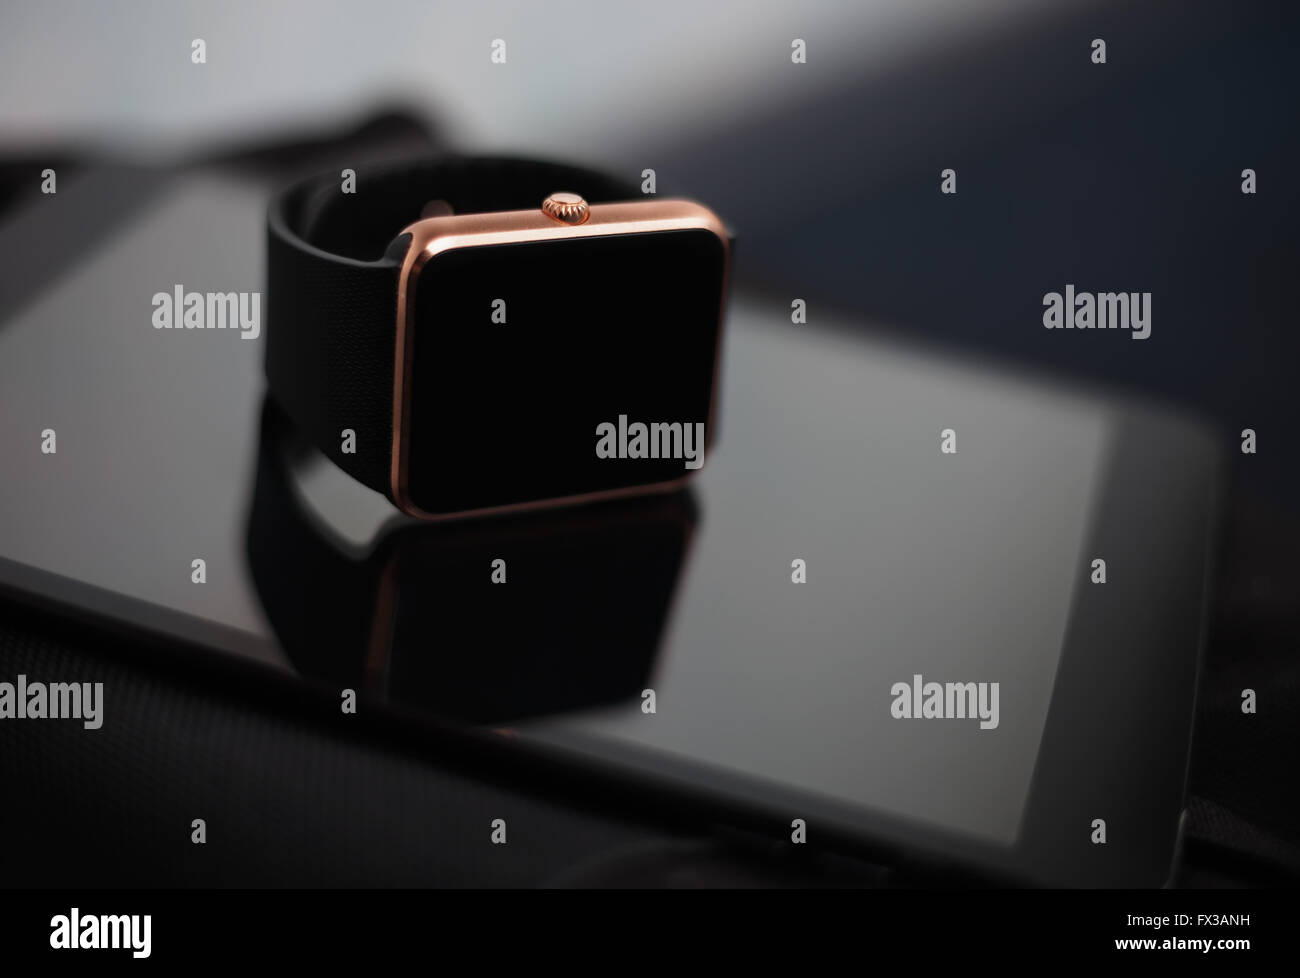 Wearable clever technology of today - smart wrist watch and tablet pc. This digital gevices will let you stay connected - Stock Image